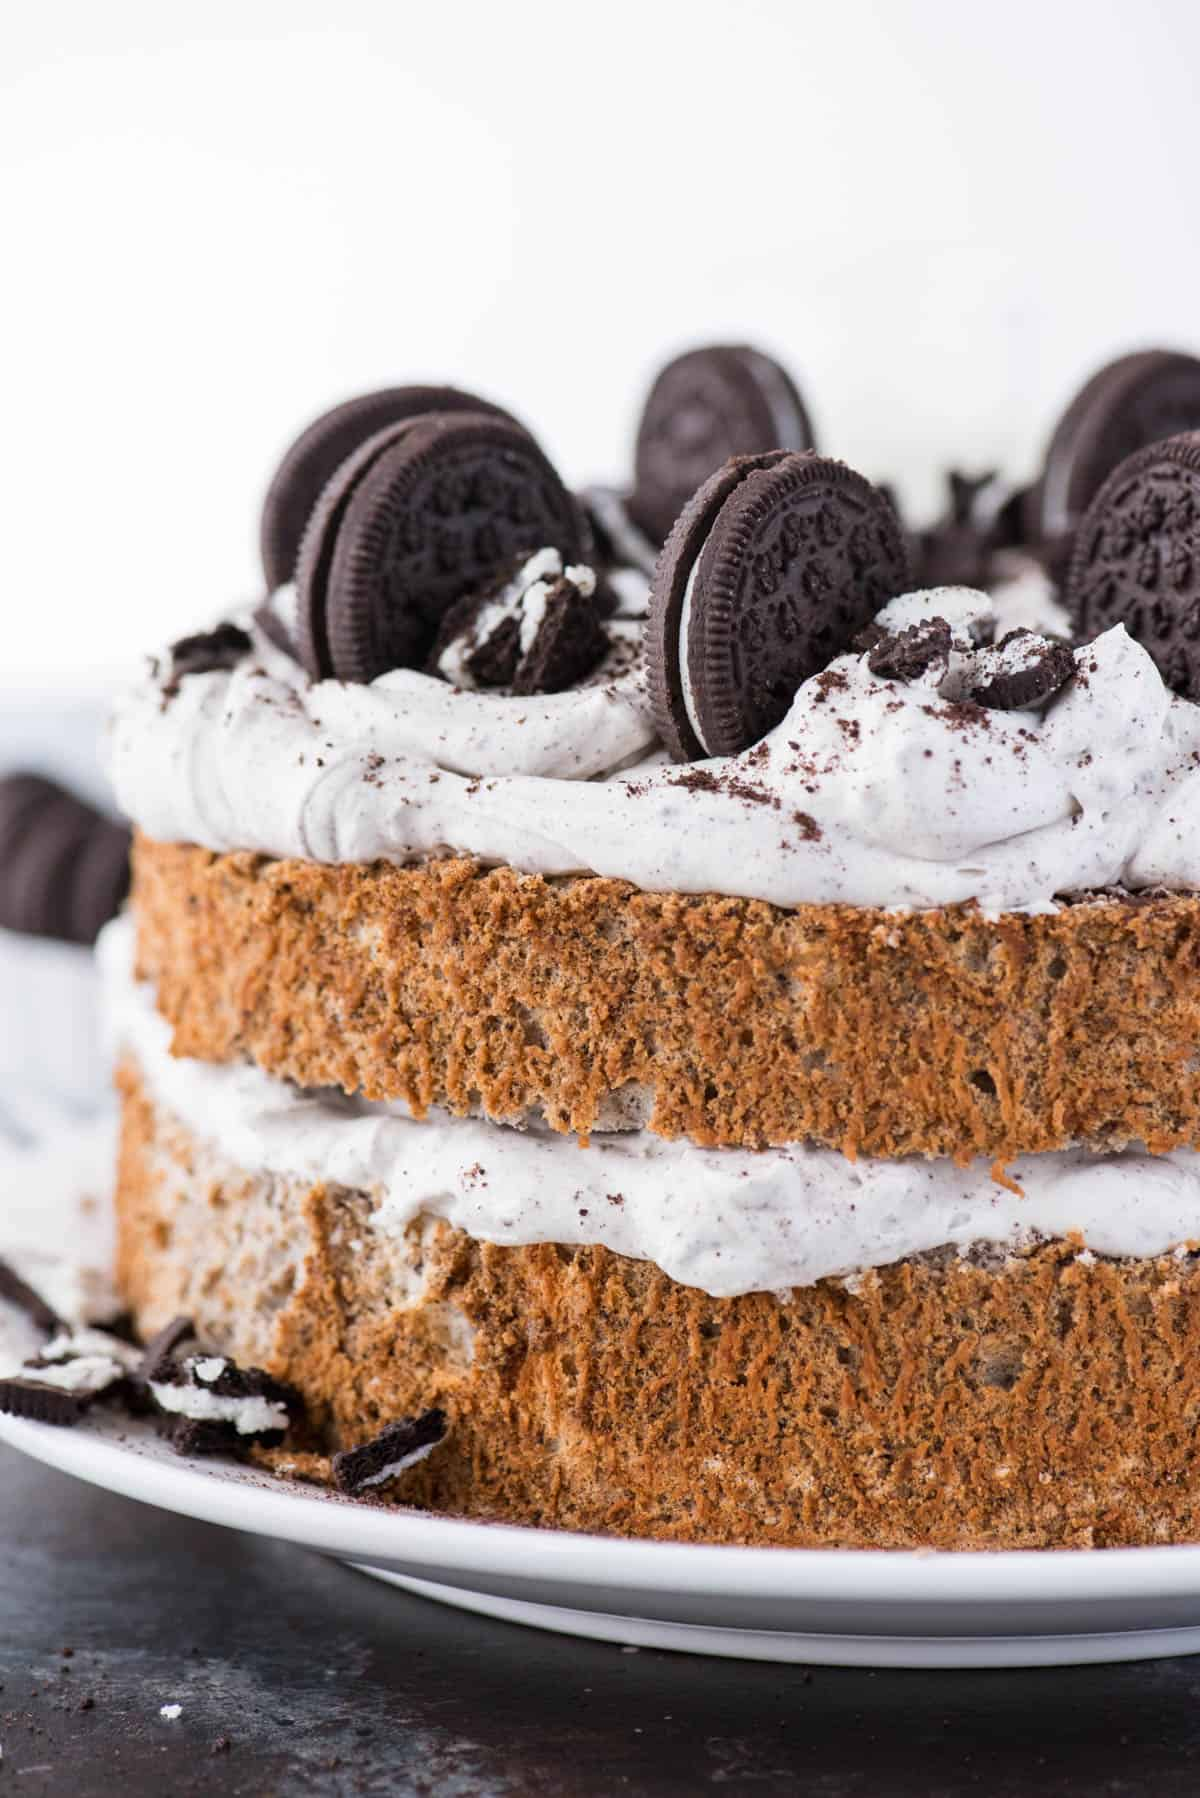 oreo angel food cake with oreo whipped cream and crushed oreo pieces on white plate on dark background